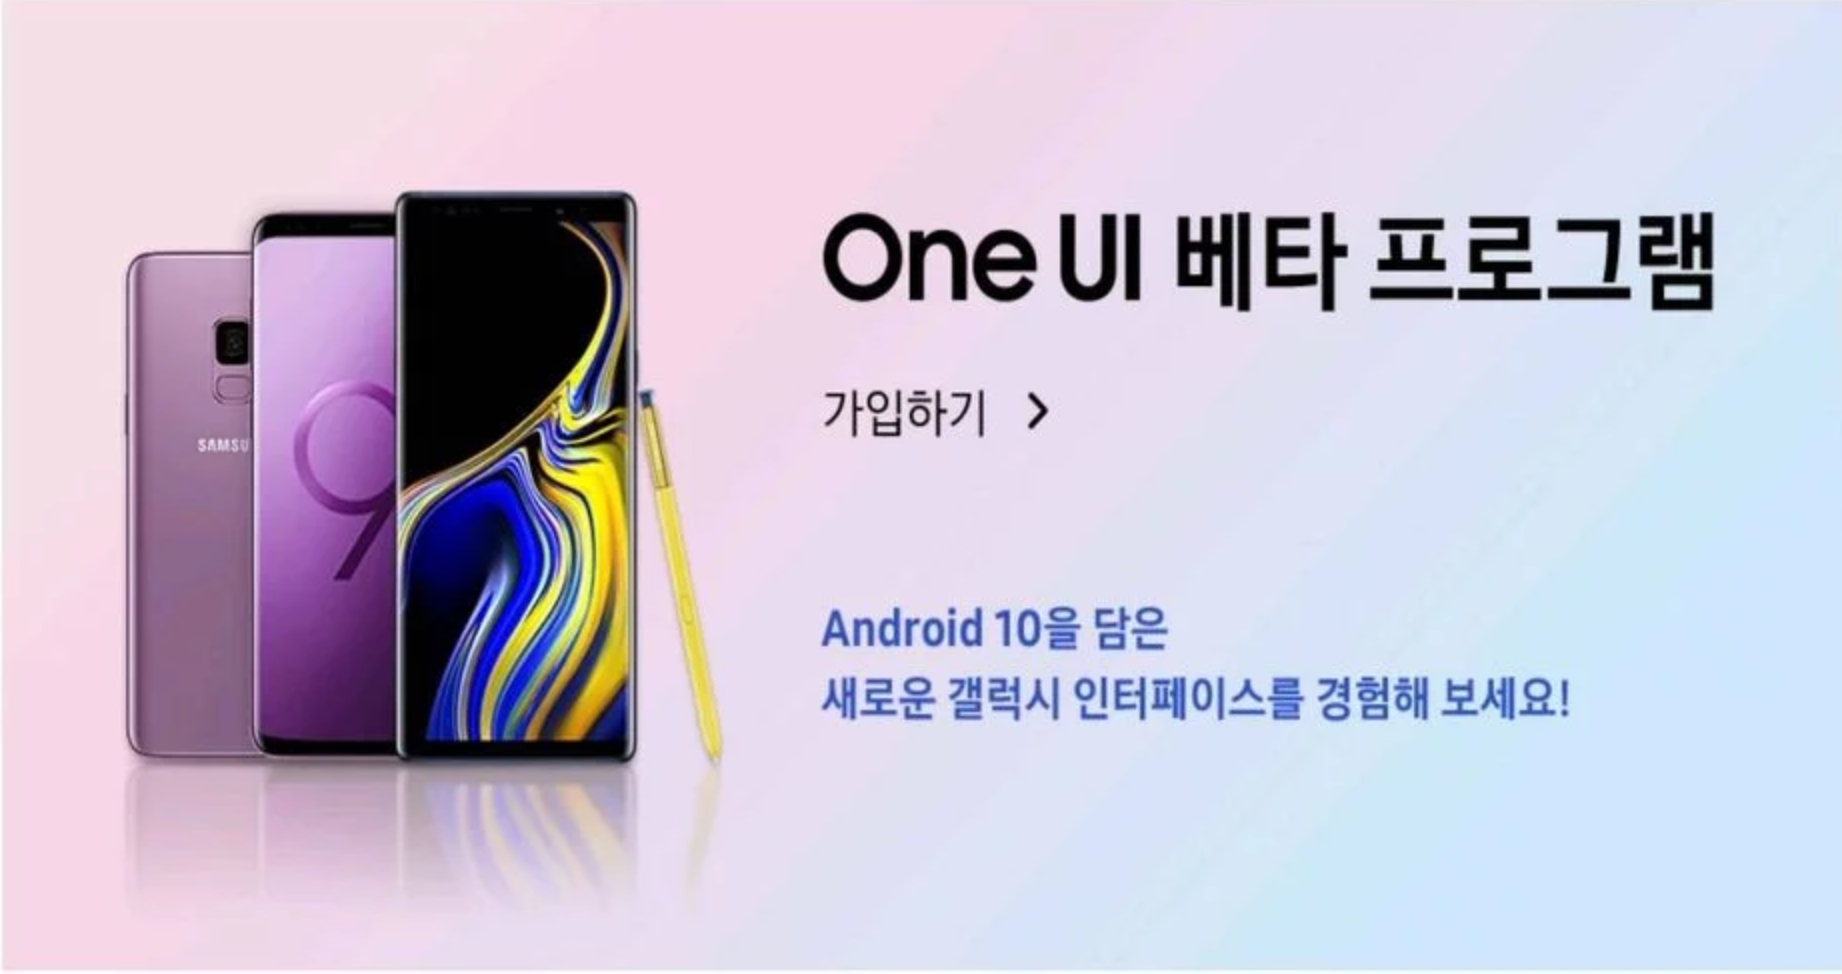 Android 10 beta Note 9 S9